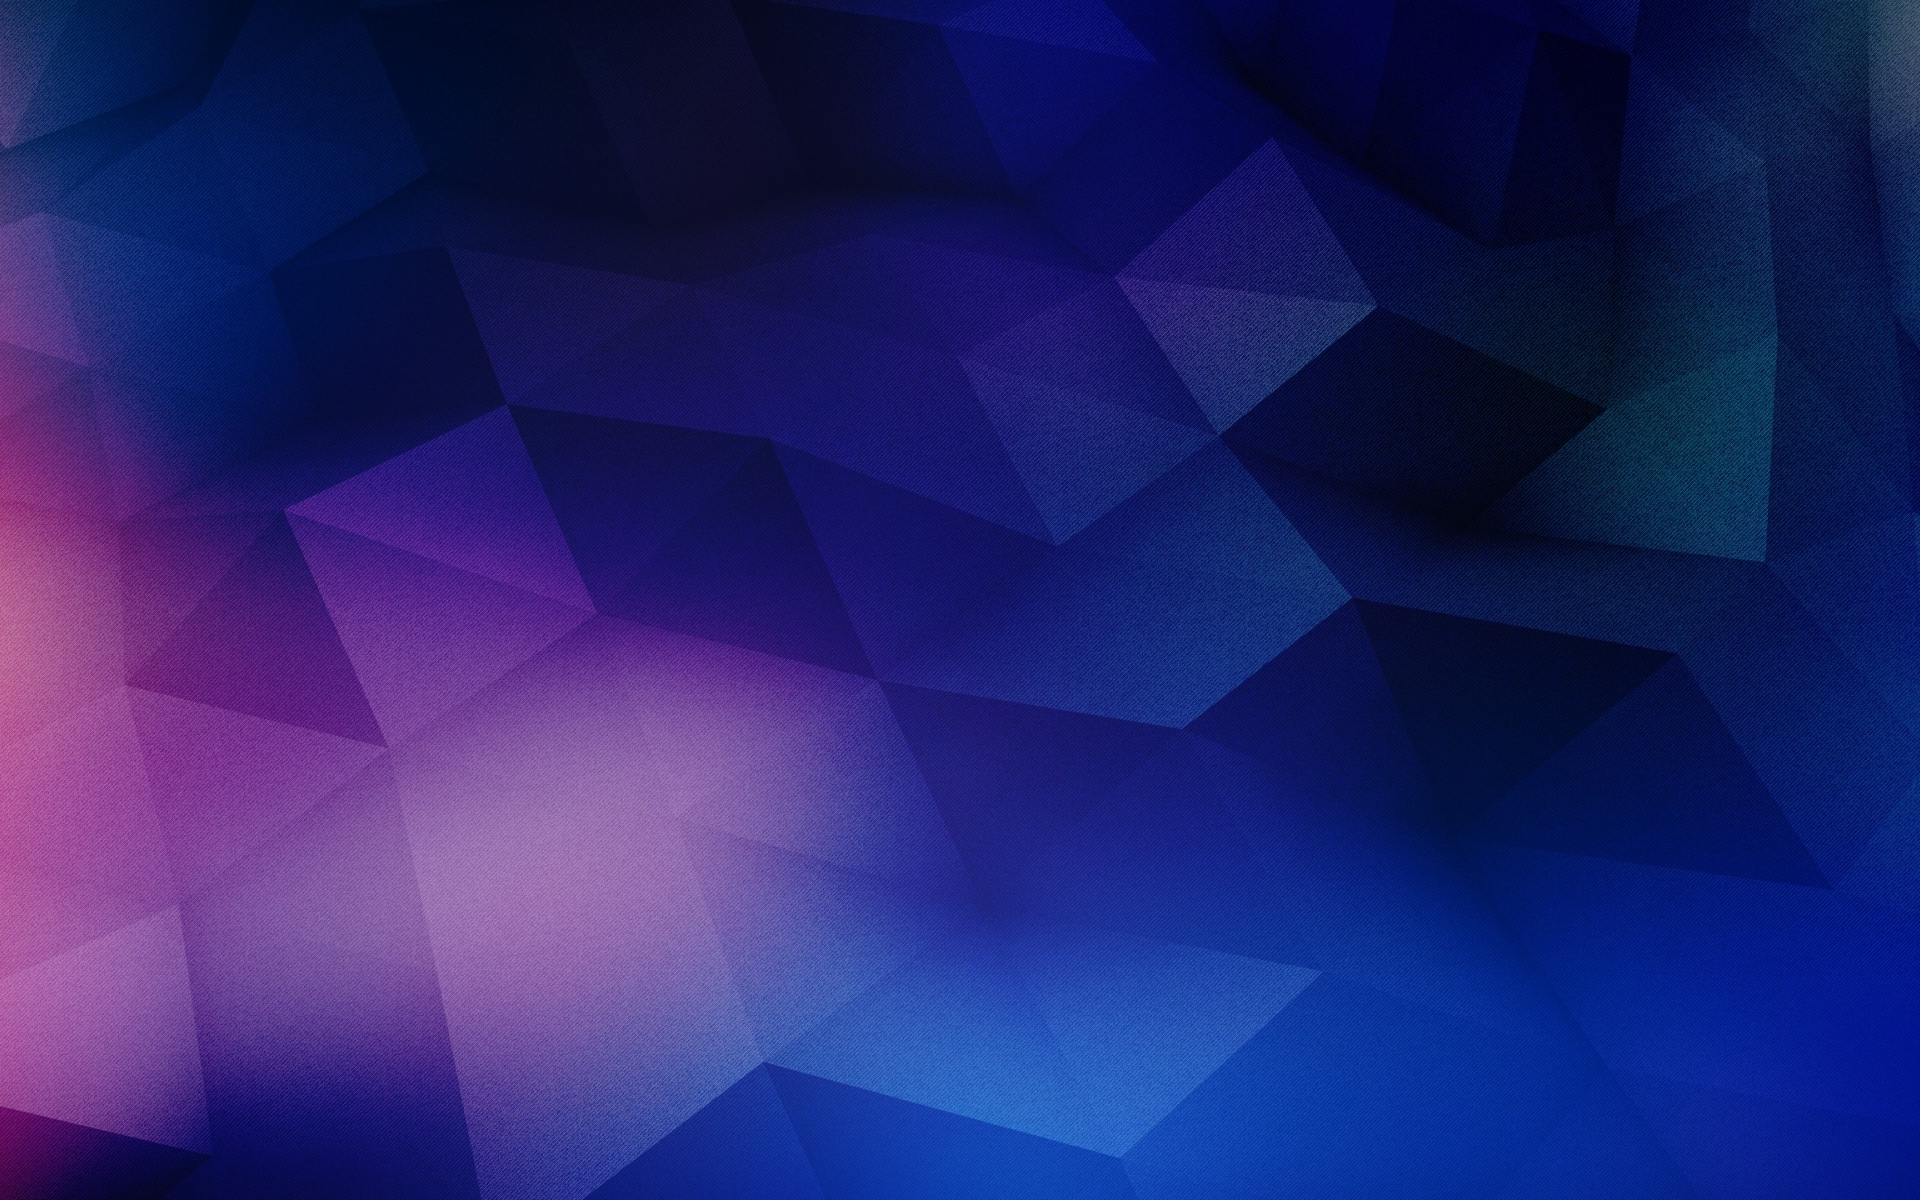 Blue and purple geometry wallpaper in 3D   Abstract wallpapers 1920x1200